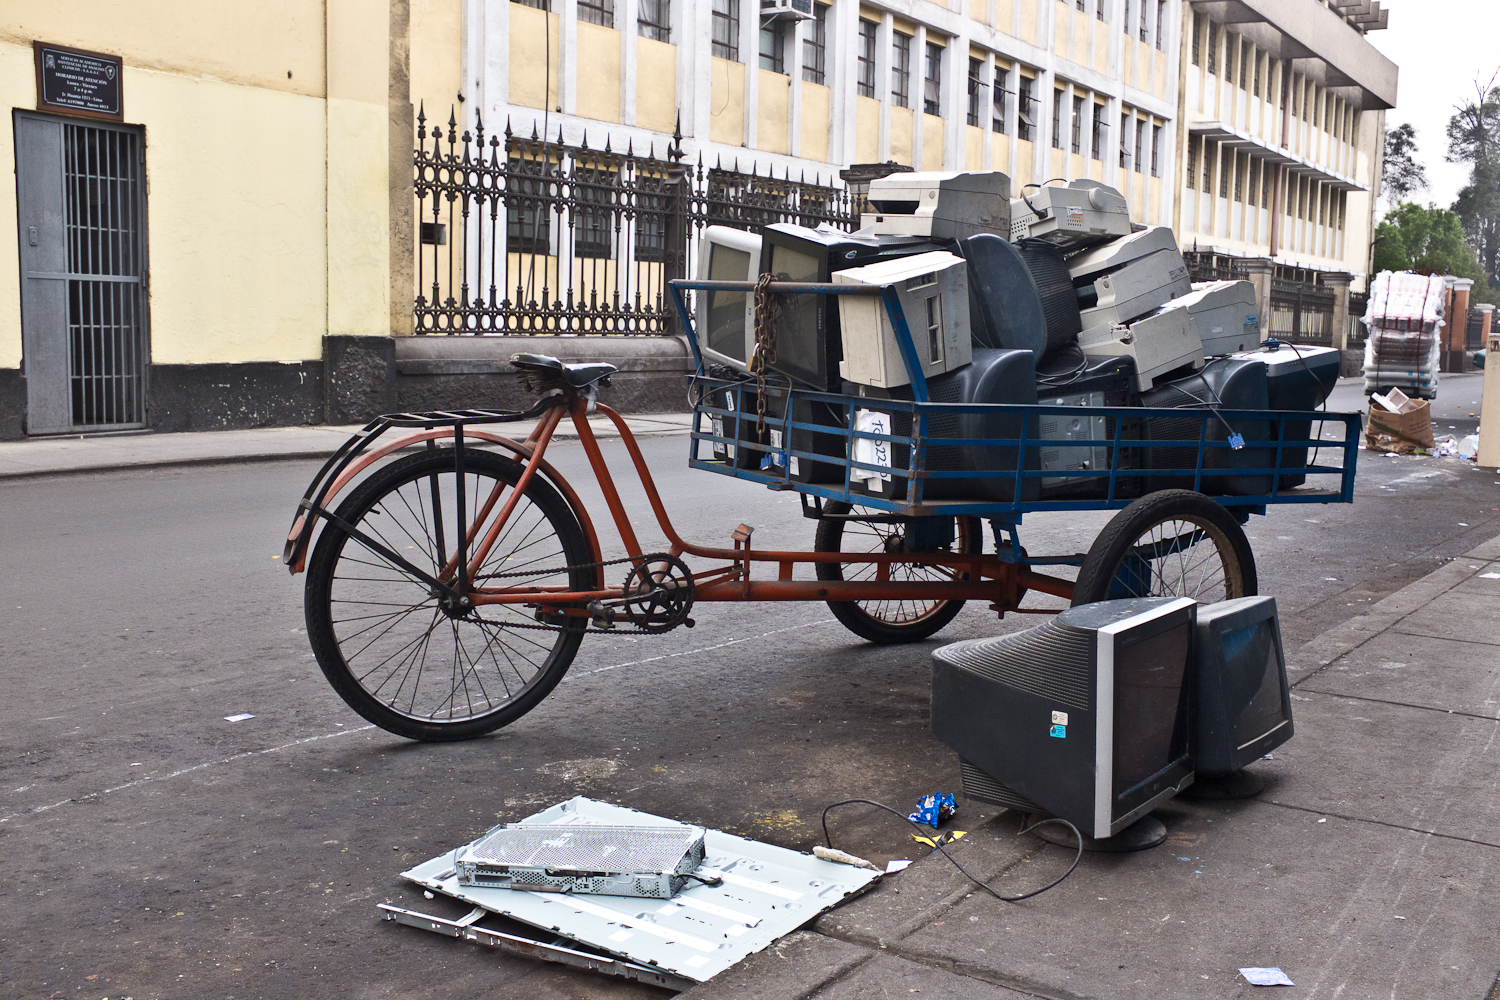 A typical collection vehicle used by 'cachineros' to informally collect electronics, or their parts, for refurbishment and resale.